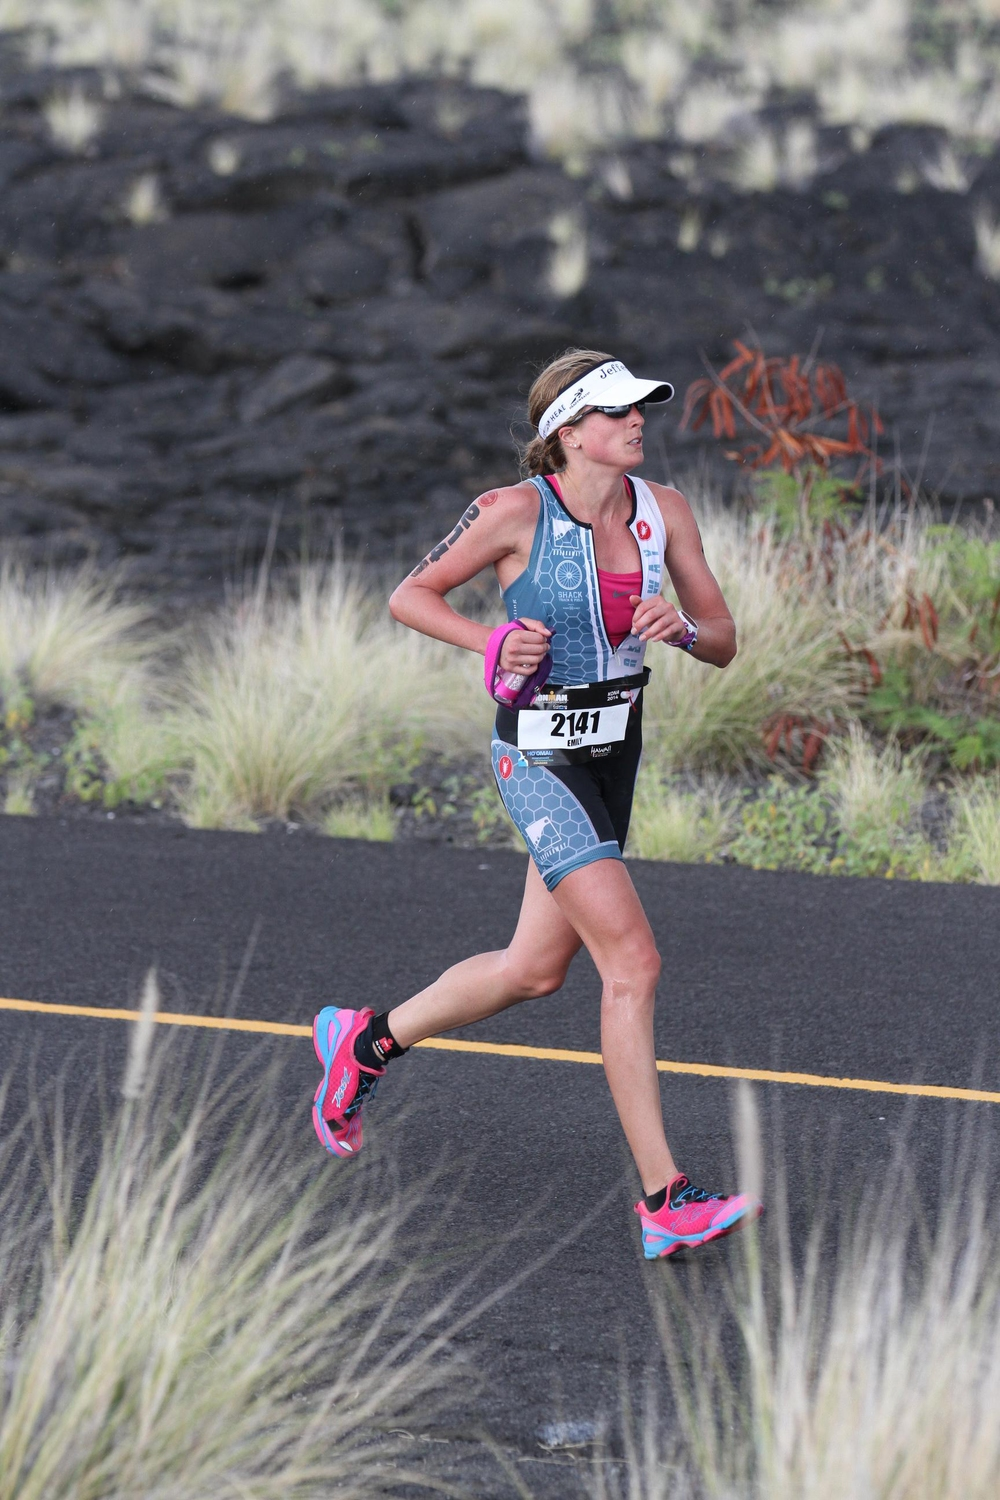 Running through the Lava Fields